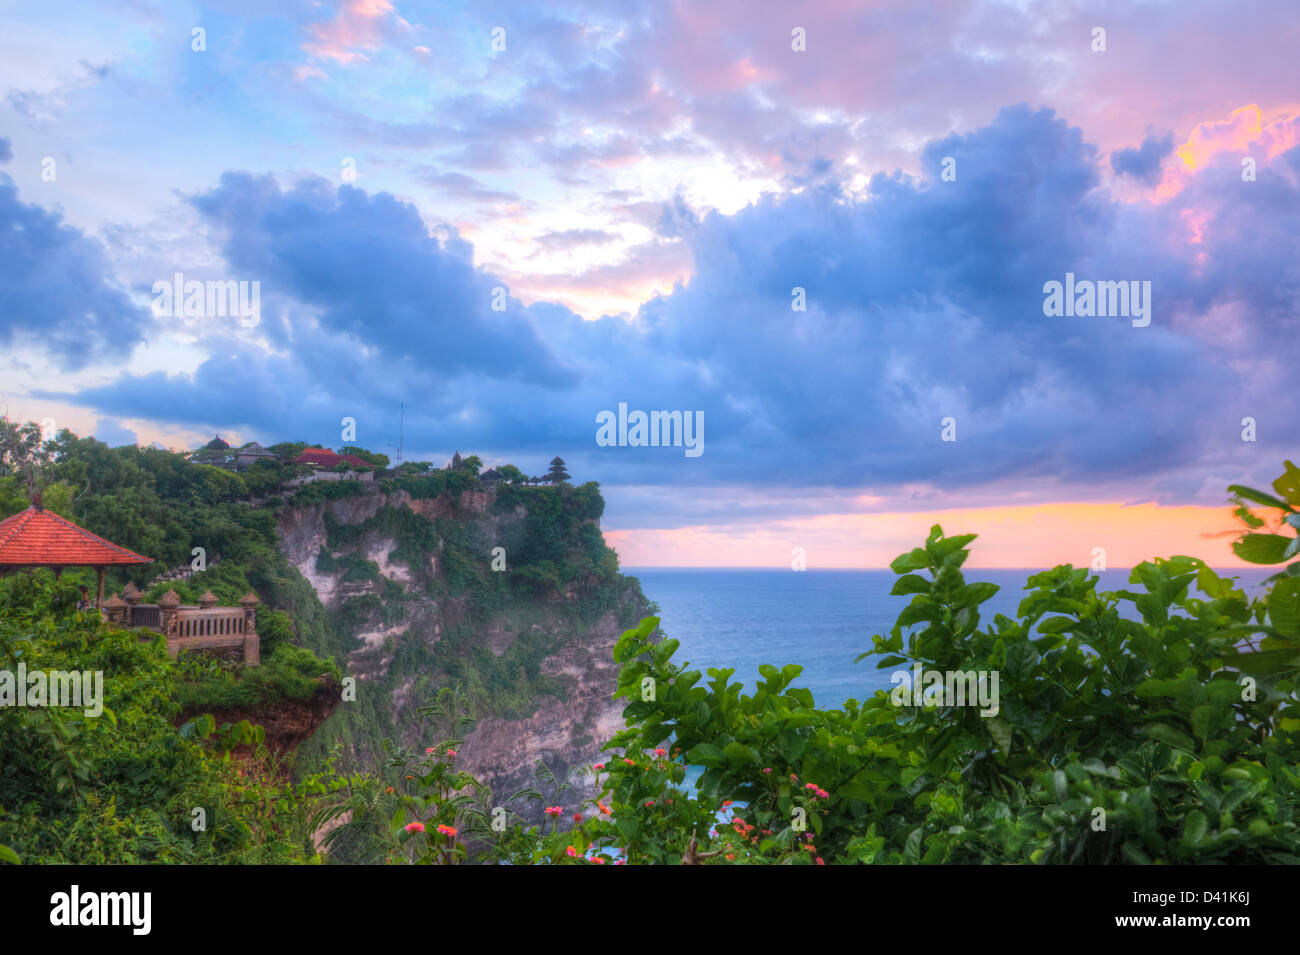 A view of Pura Luhur Uluwatu and Indian Ocean - Stock Image